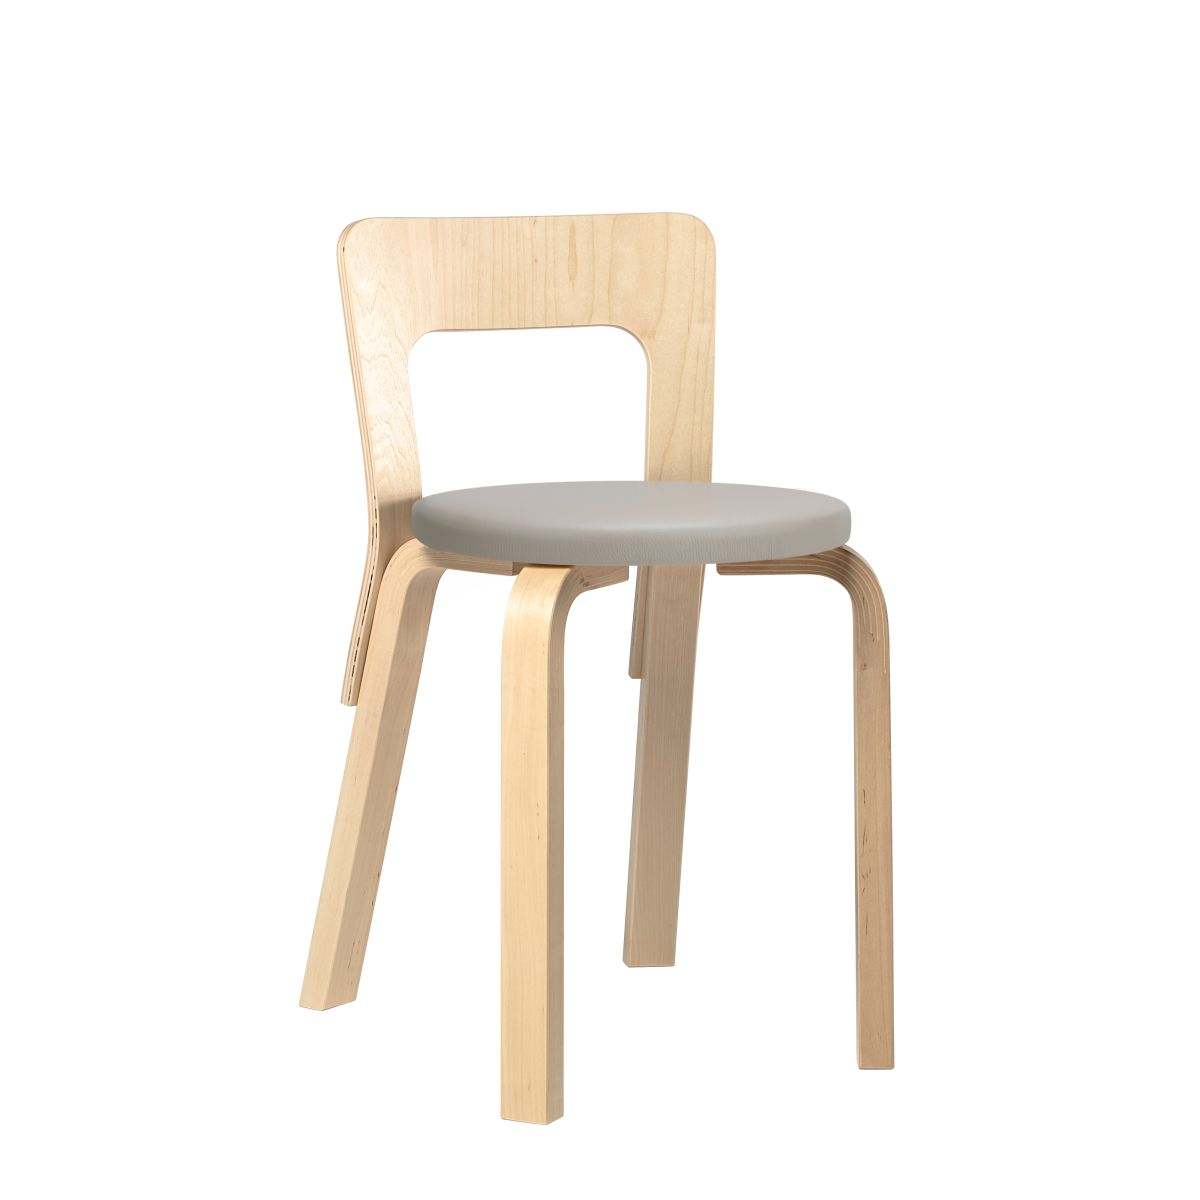 Chair-65-birch-seat-leather-upholstery-padding_F-2912686